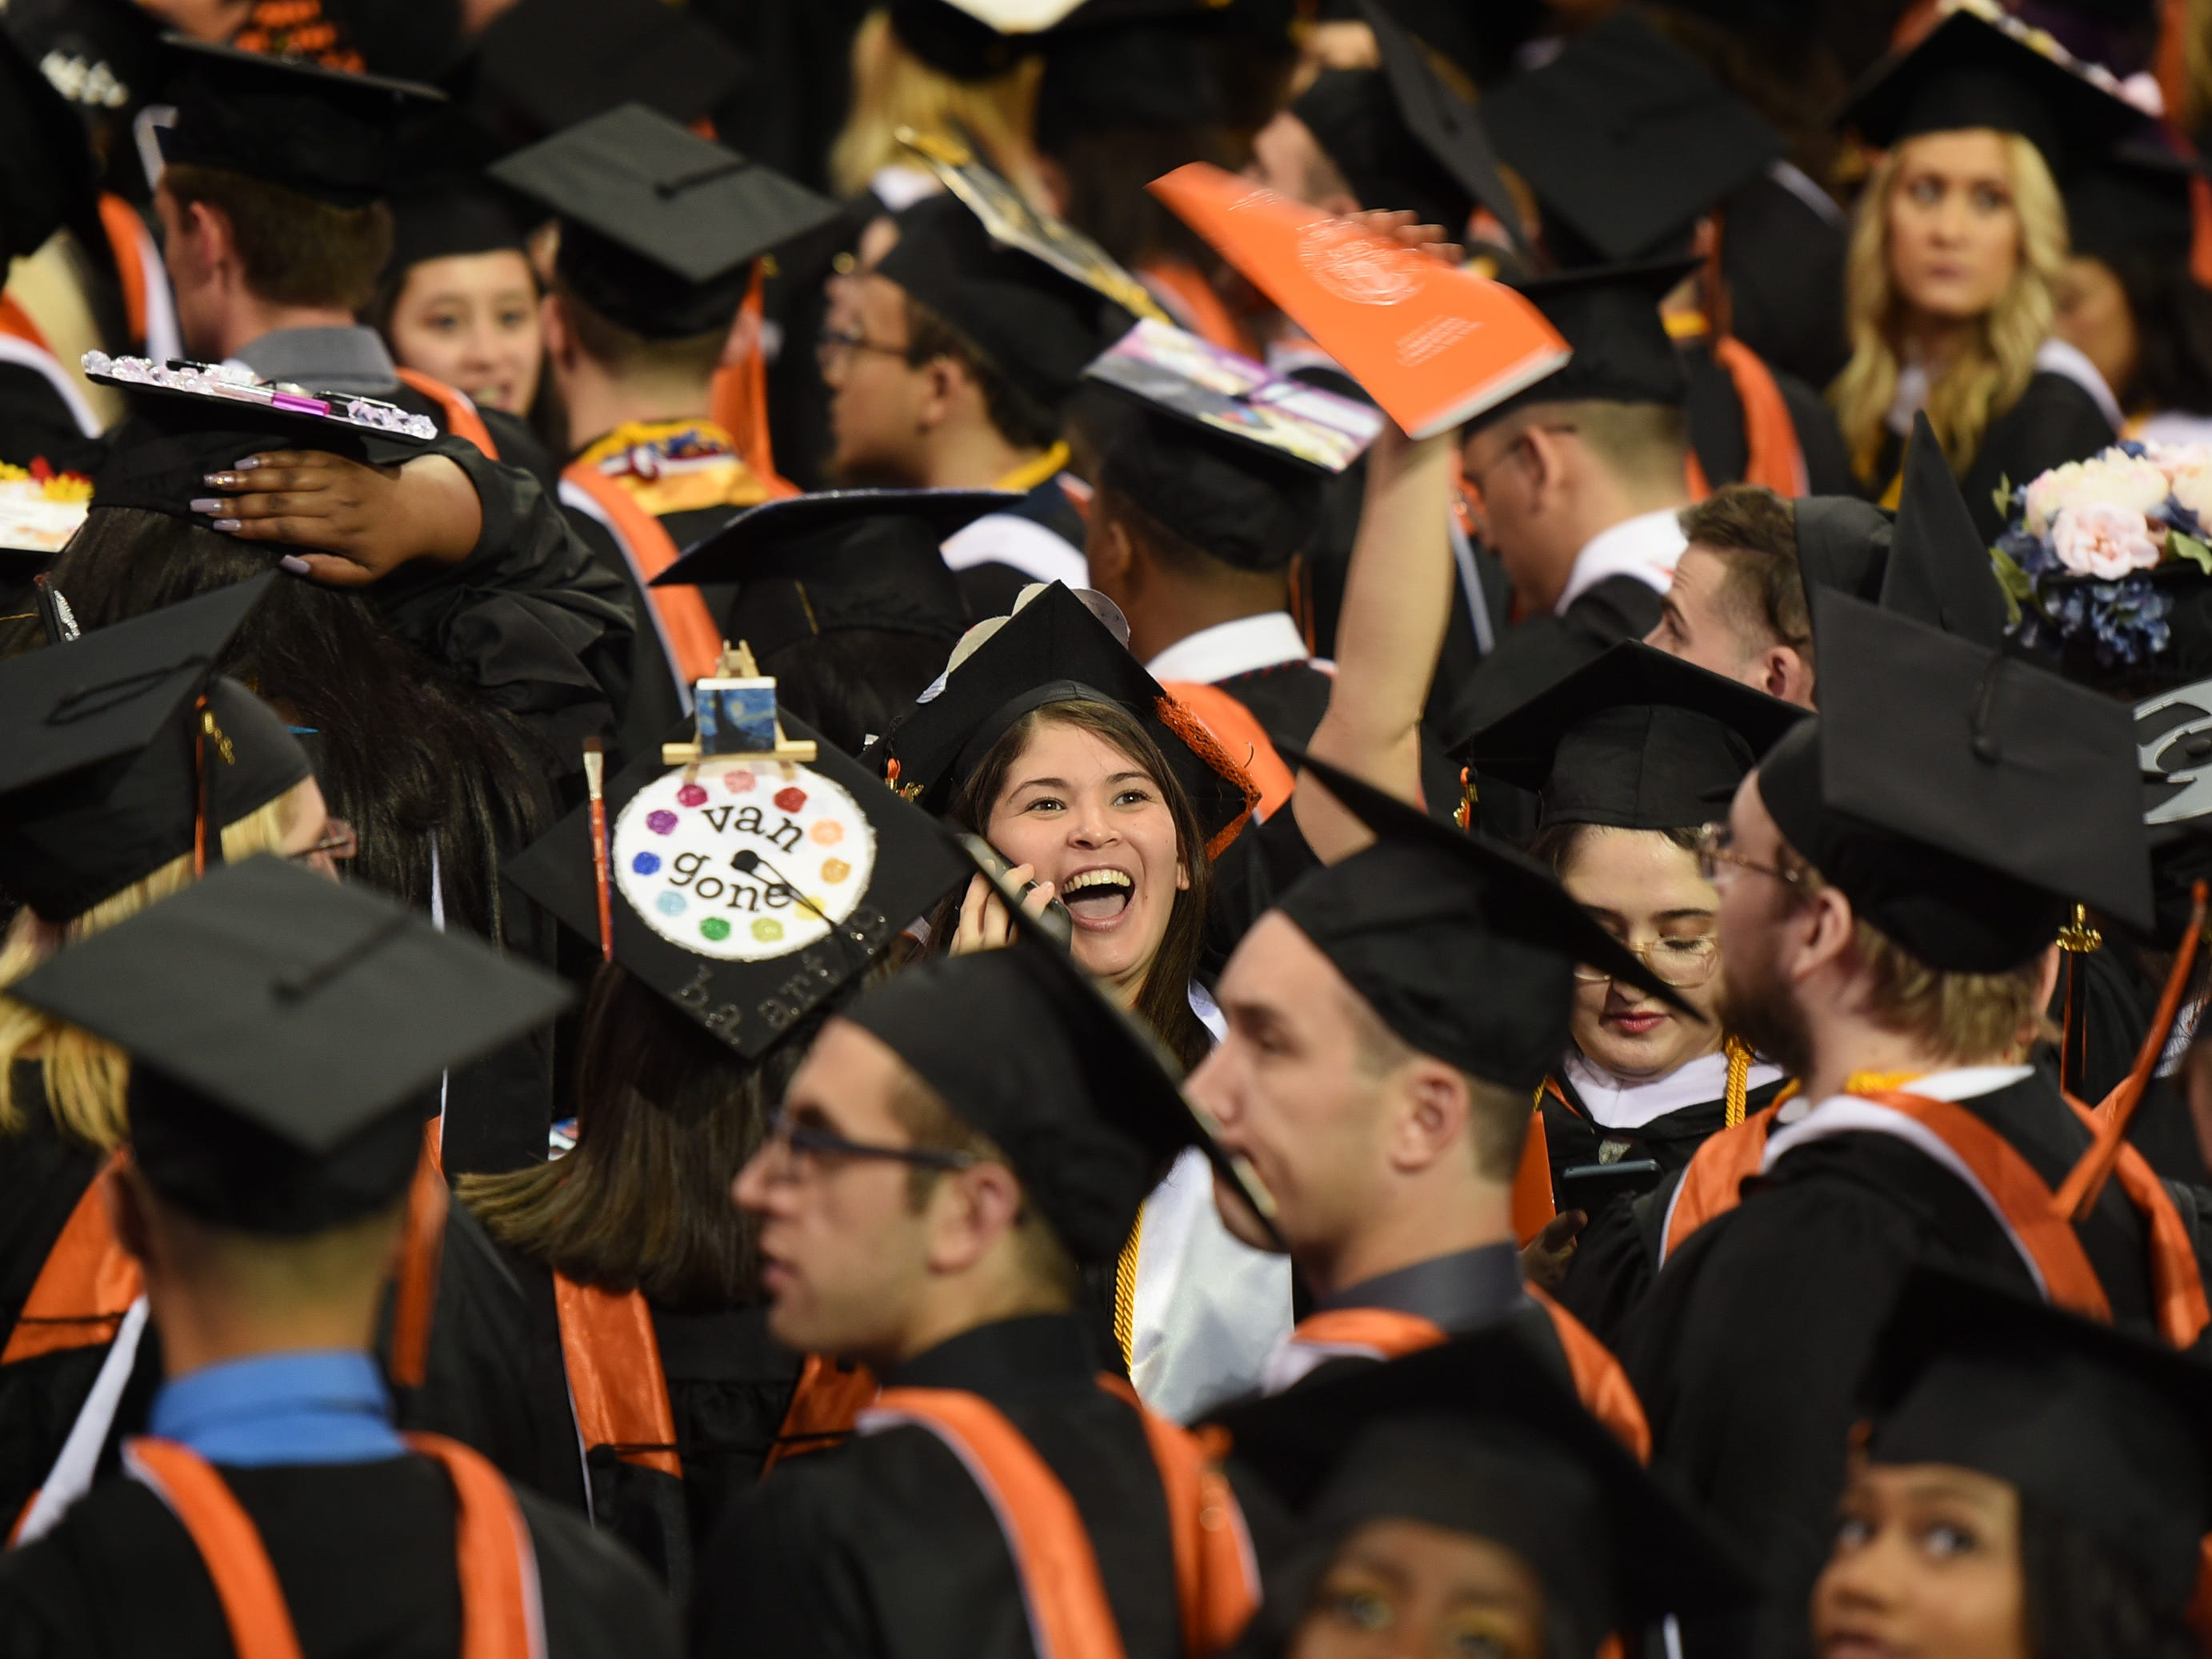 A graduate waves to members of her family at the beginning of the William Paterson University 2019 Commencement at the Prudential Center in Newark on 05/15/19.